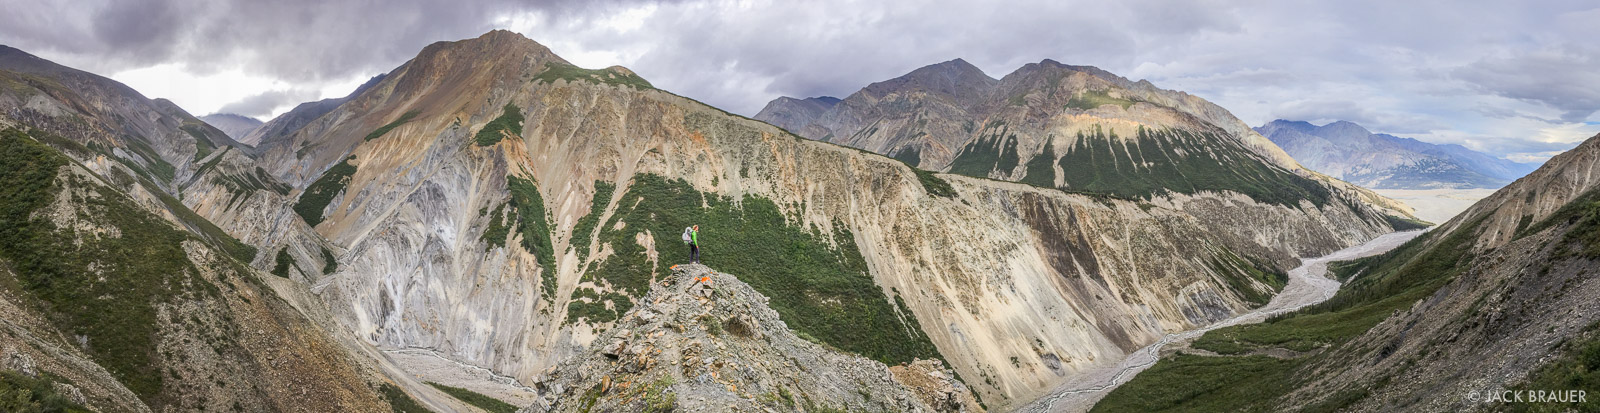 Panoramic view of the rugged Columbia Creek valley.